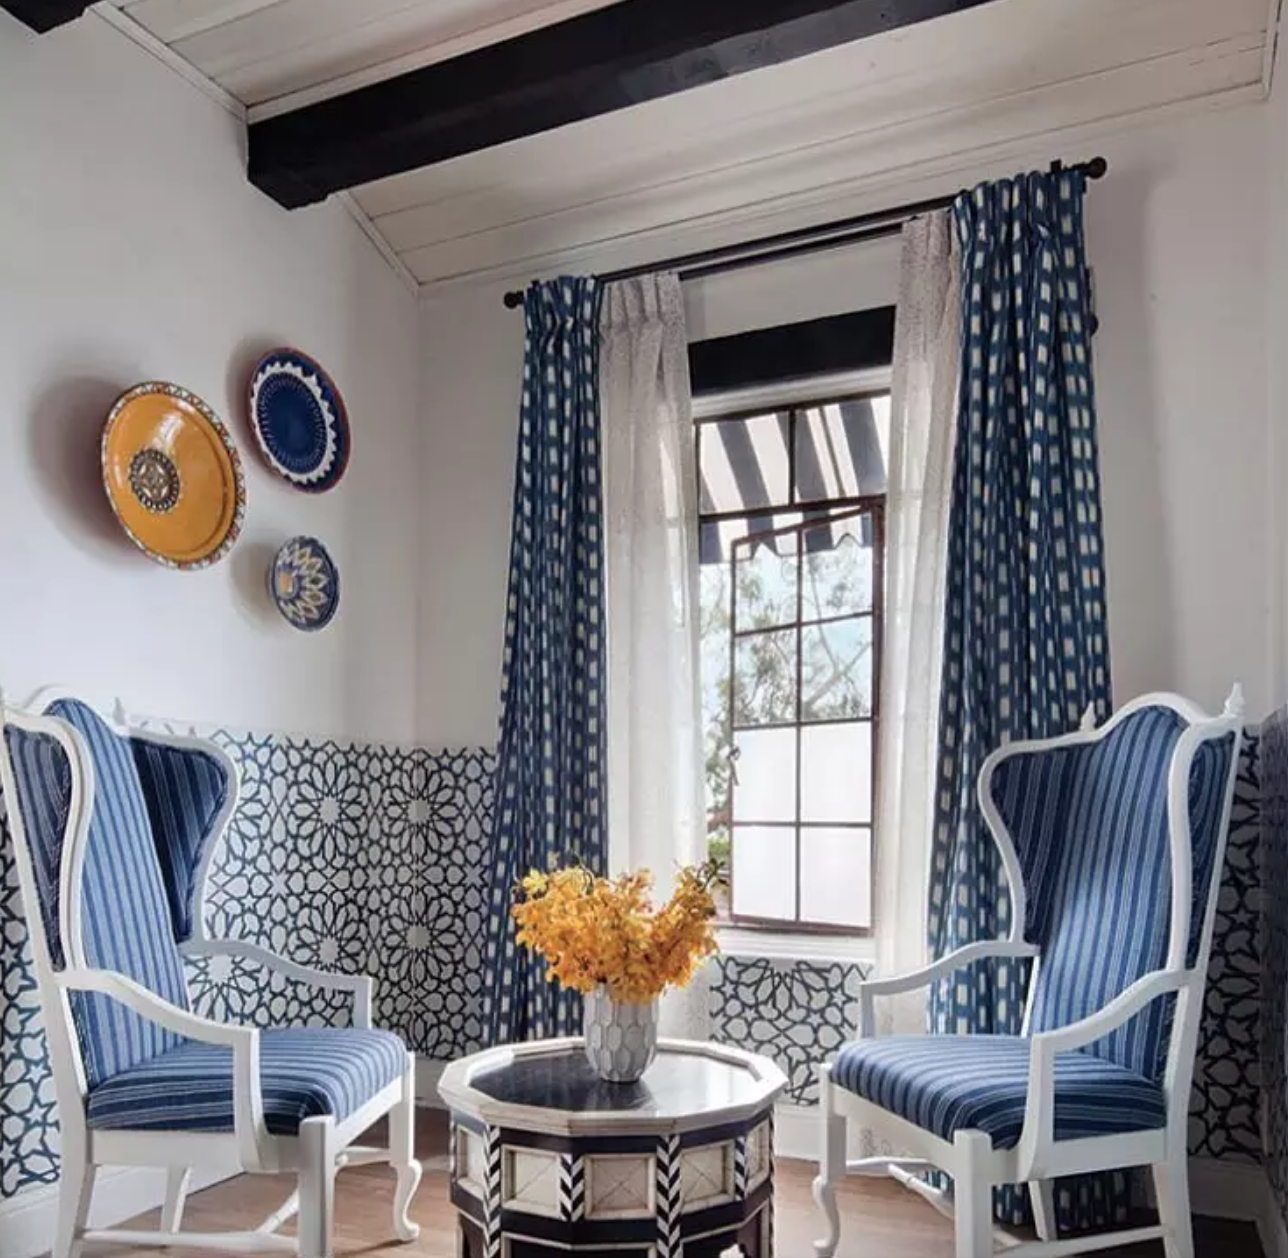 Floral blue and white wall tile